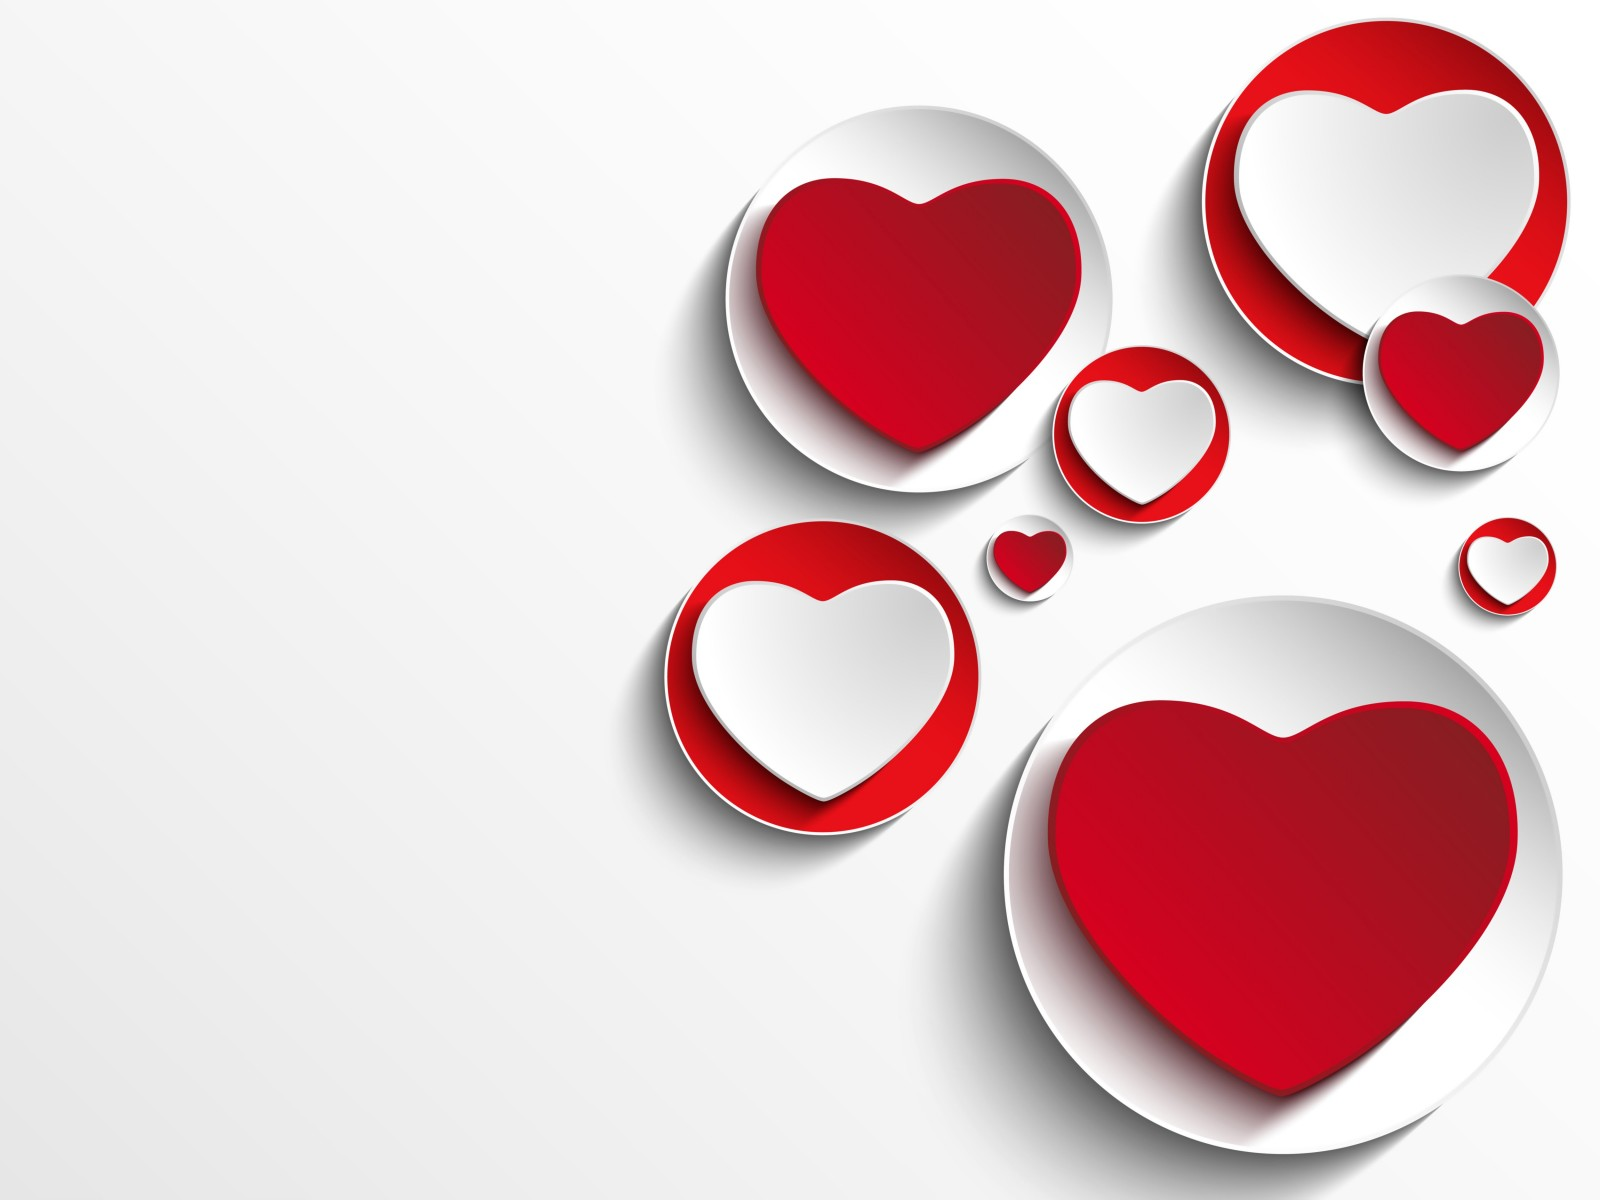 Minimalistic Hearts Shapes HD wallpaper for 1600x1200 ...